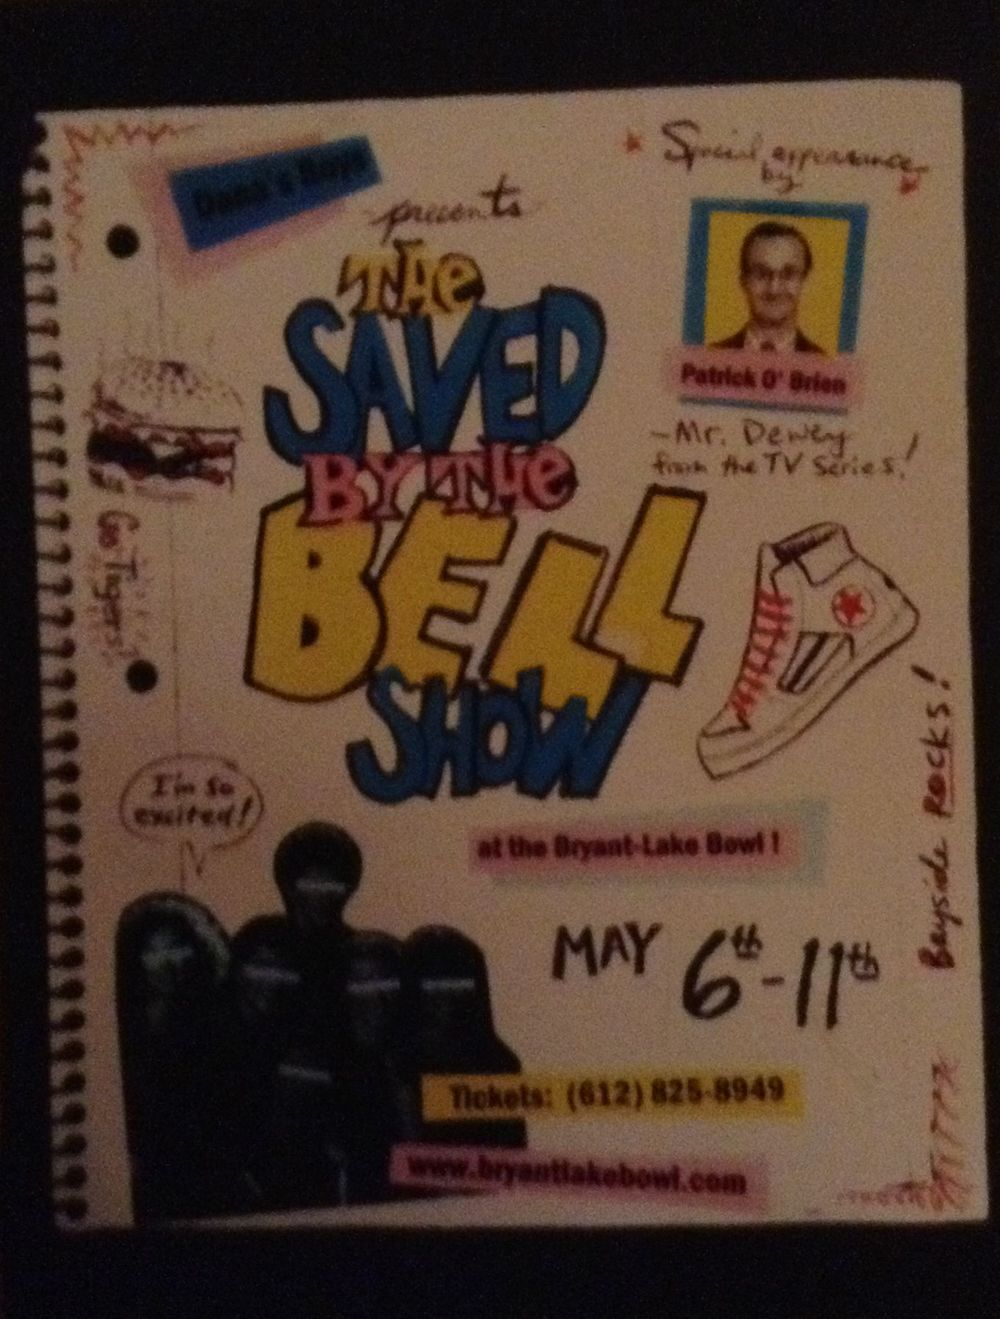 Saved by the bell .jpg